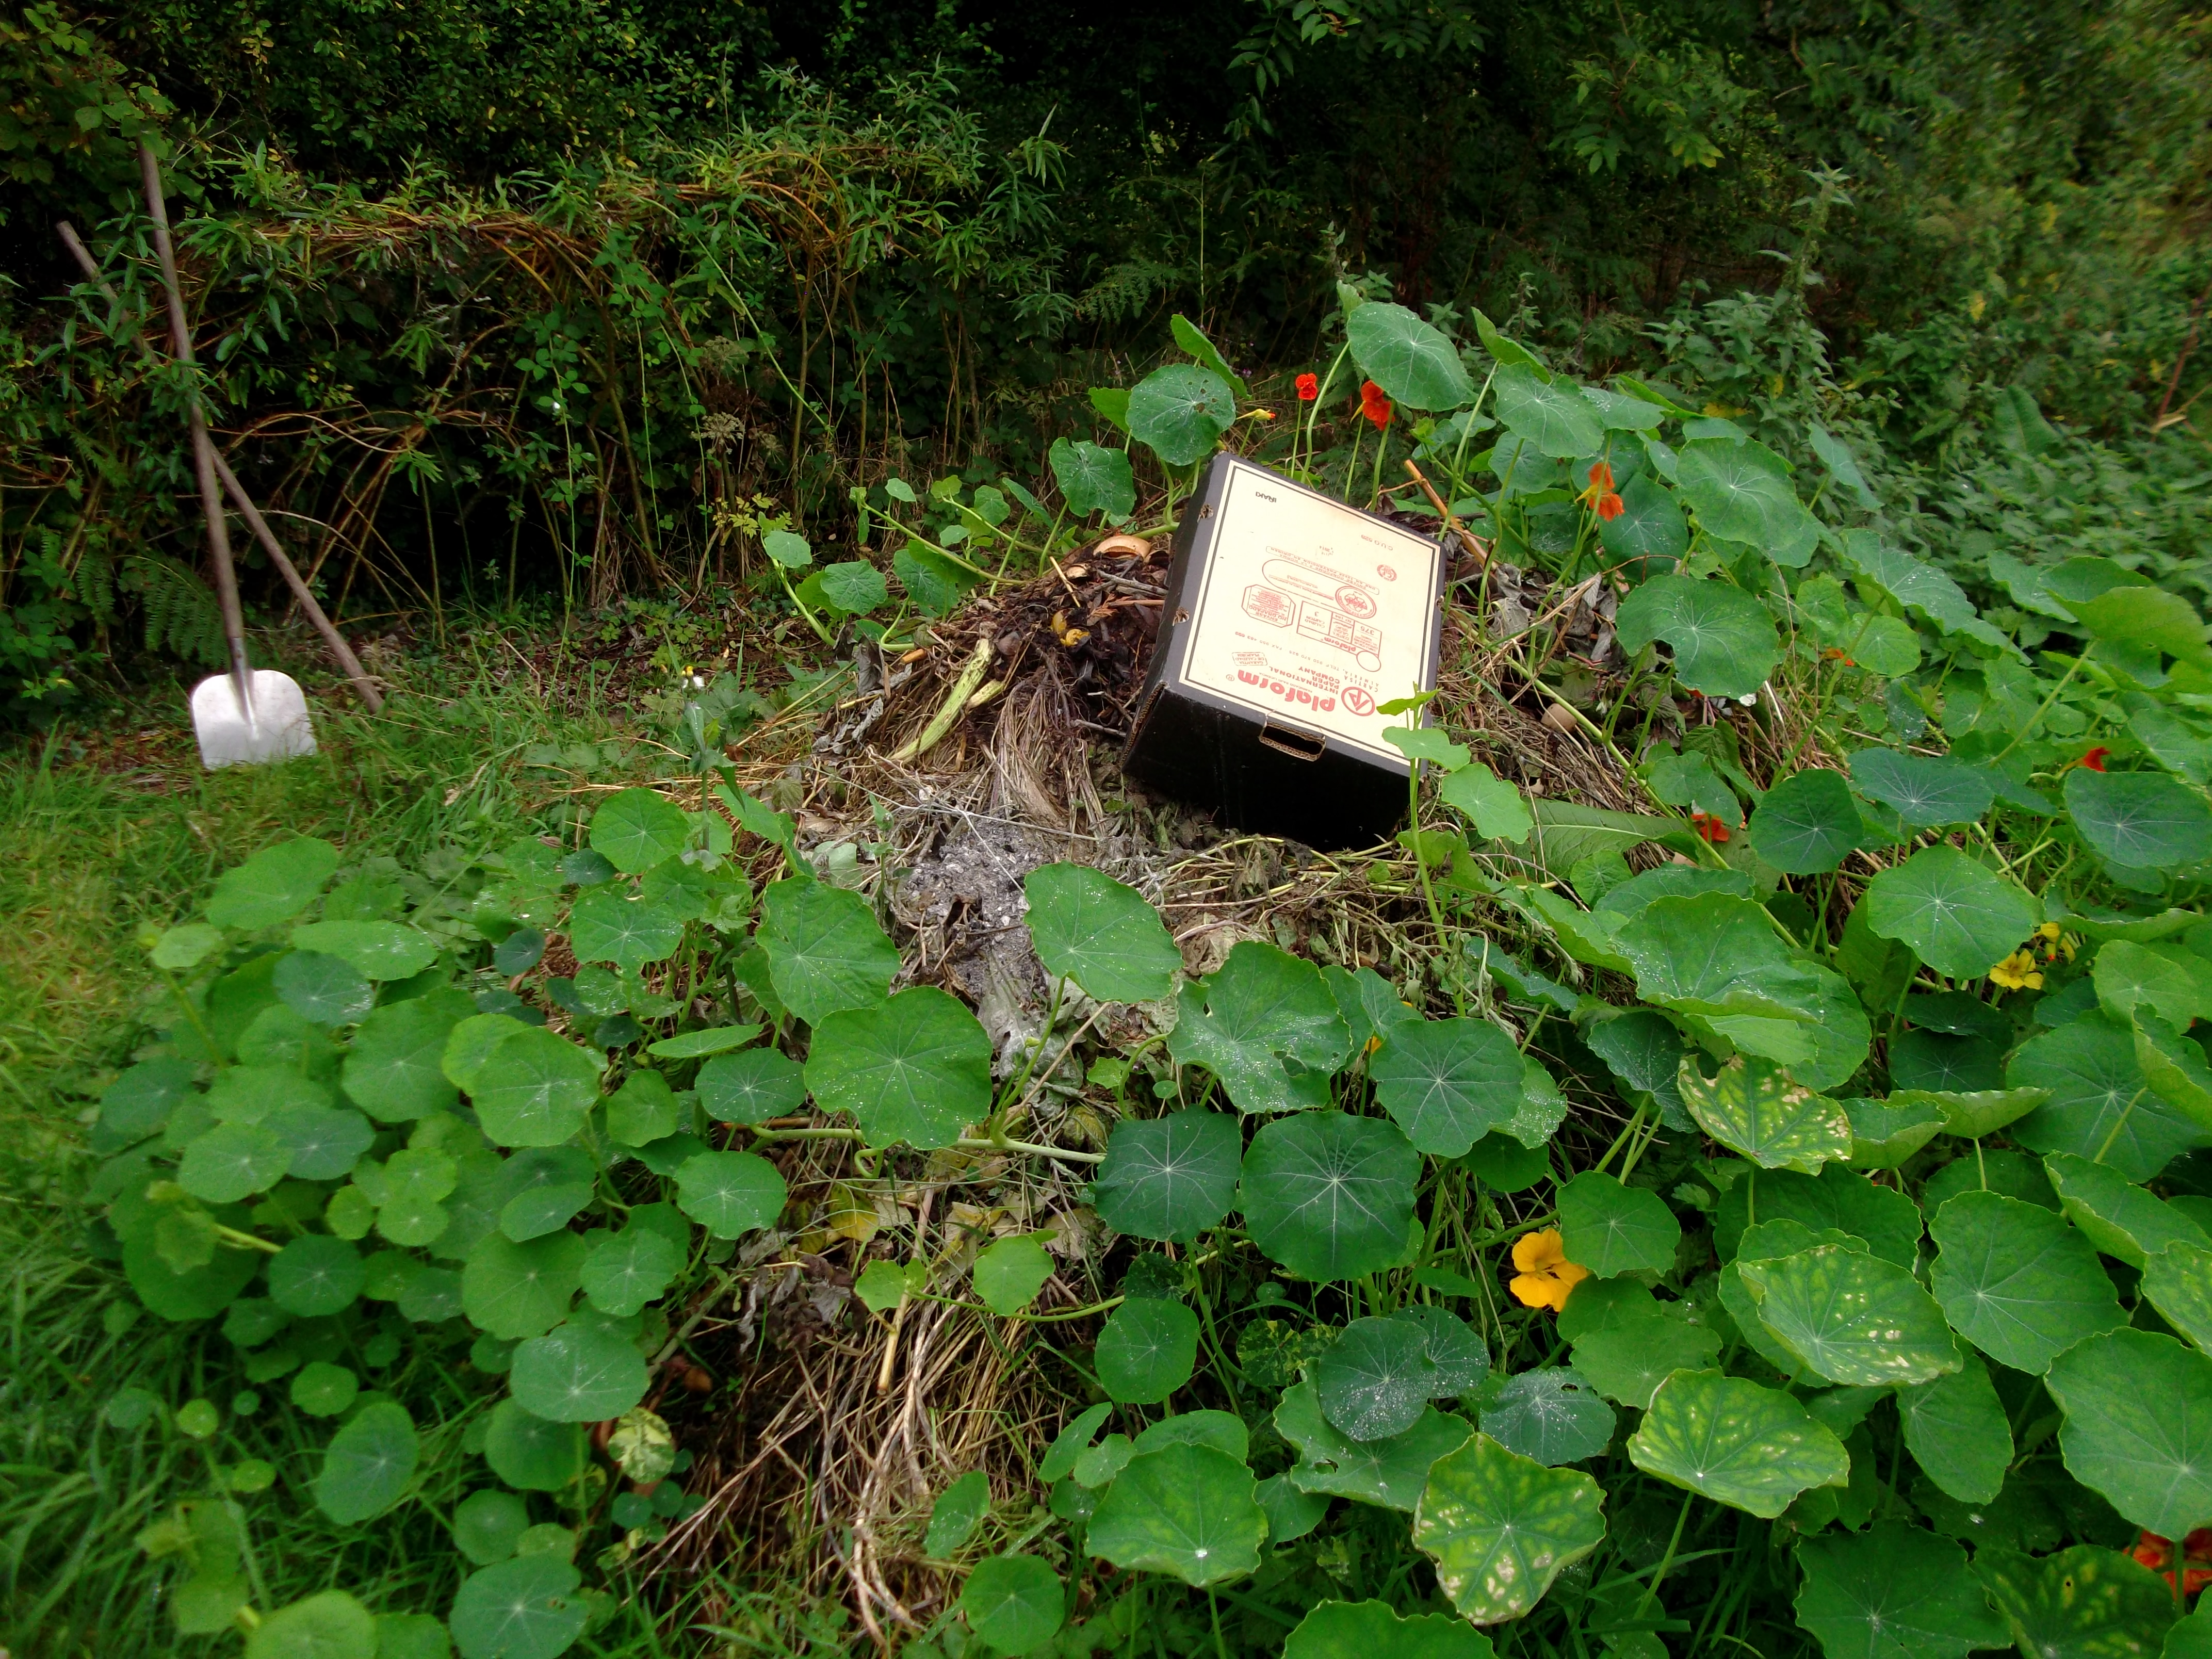 permaculture gardens at bealtainecottage.com 008